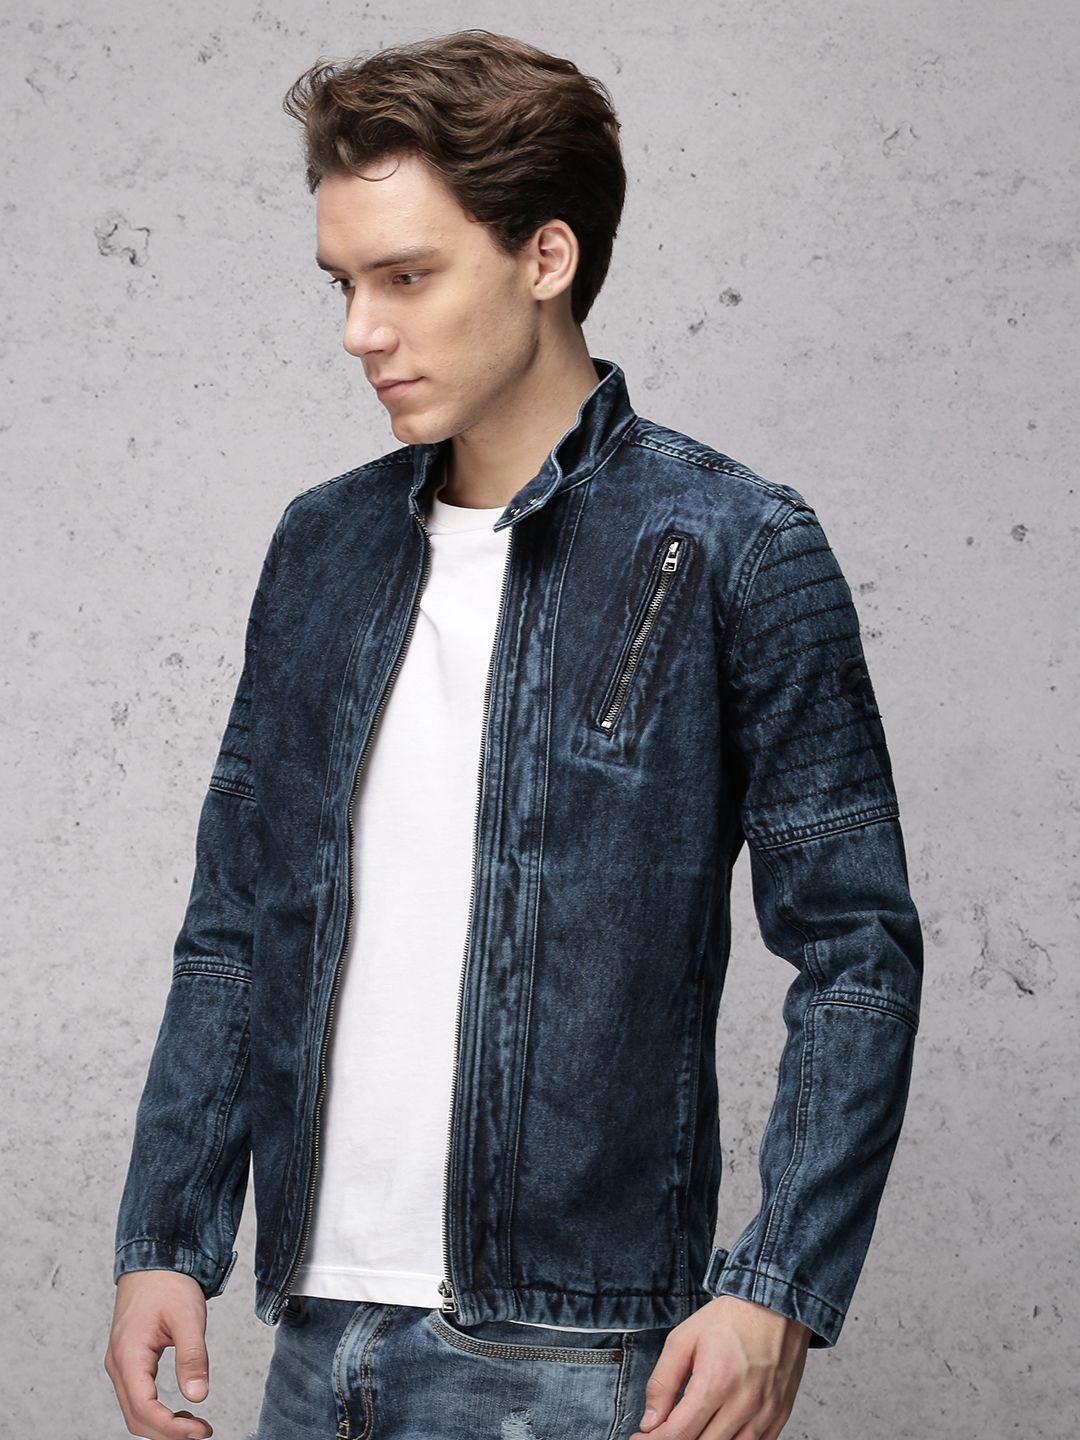 498c74f50b Denim biker jacket - Ecko Unltd India